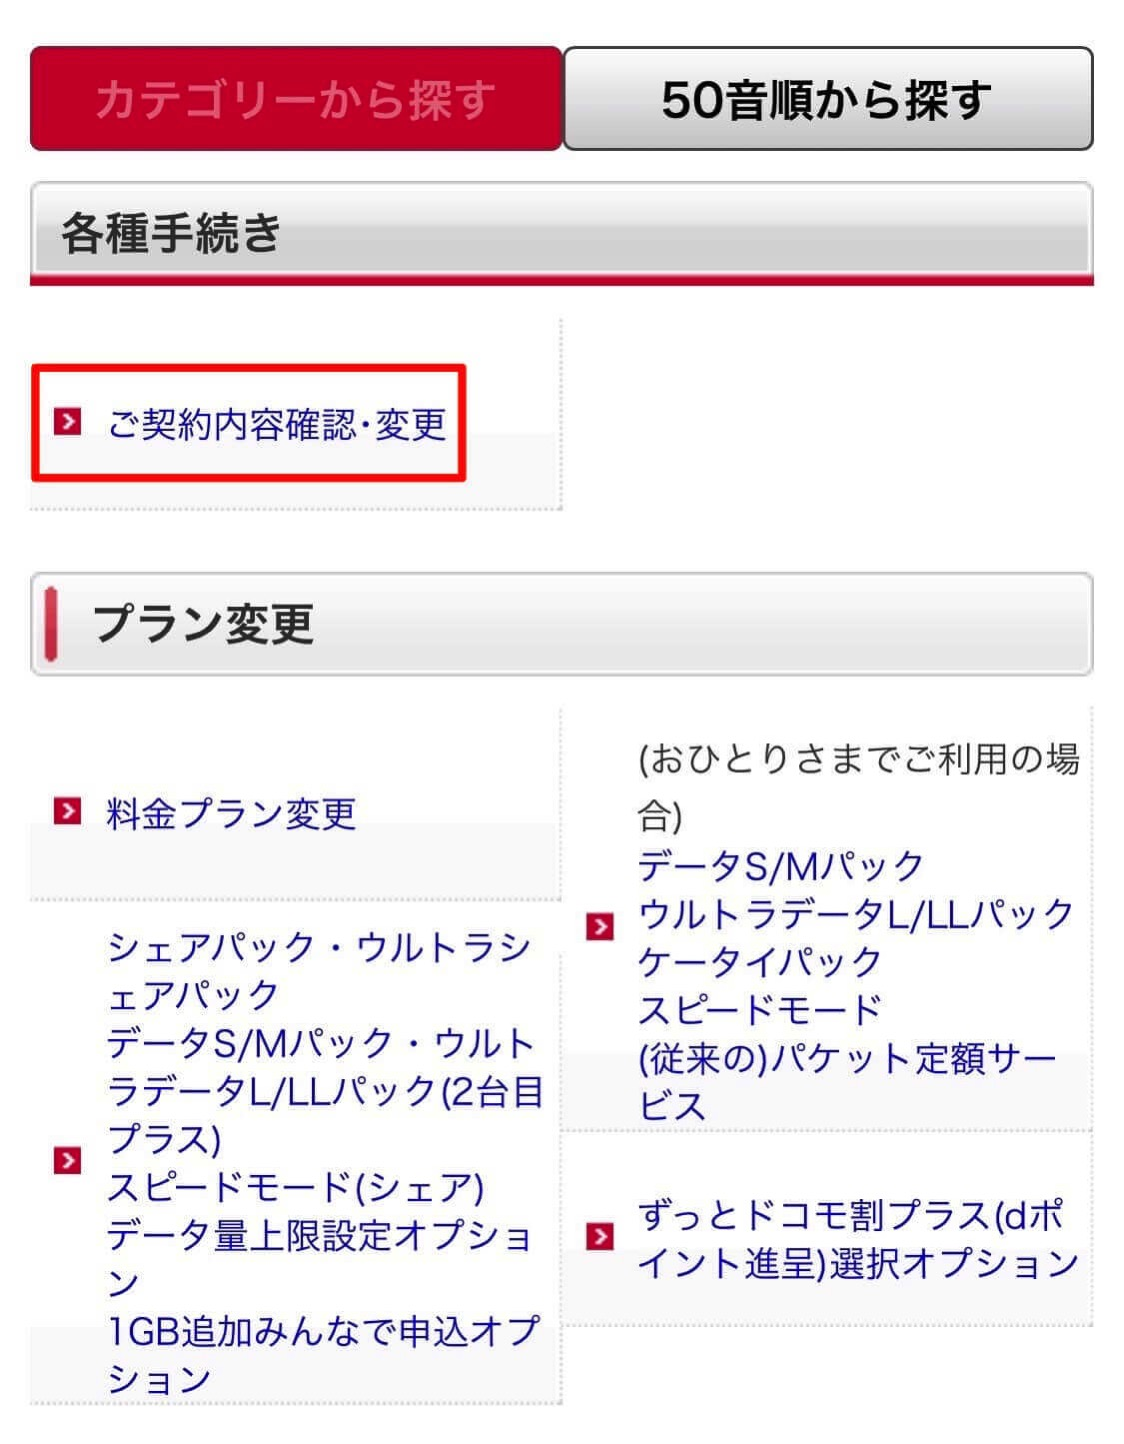 The docomo one number service cancellation of a contract 3